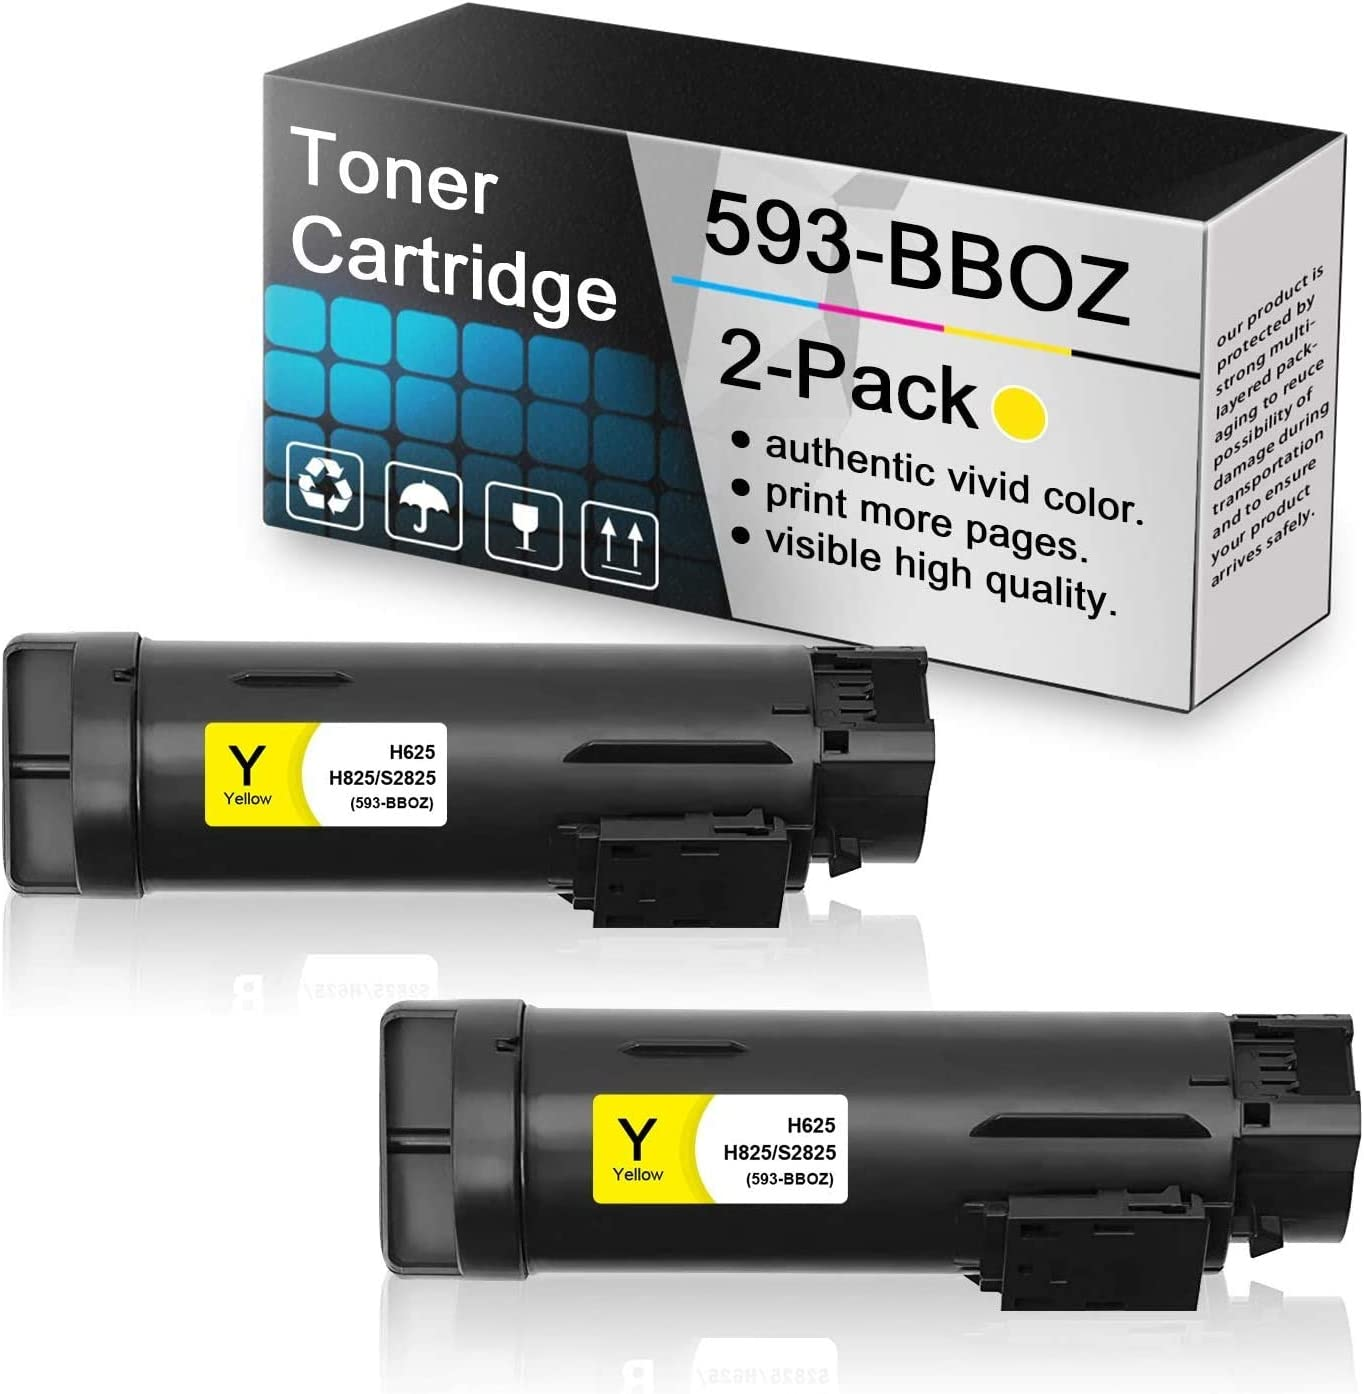 2-Pack Yellow 593-BBOZ Compatible Toner Cartridge Replacement for Dell h625 to use with Dell H625 H625cdw H825 H825cdw S2825cdn S2825 Printers.